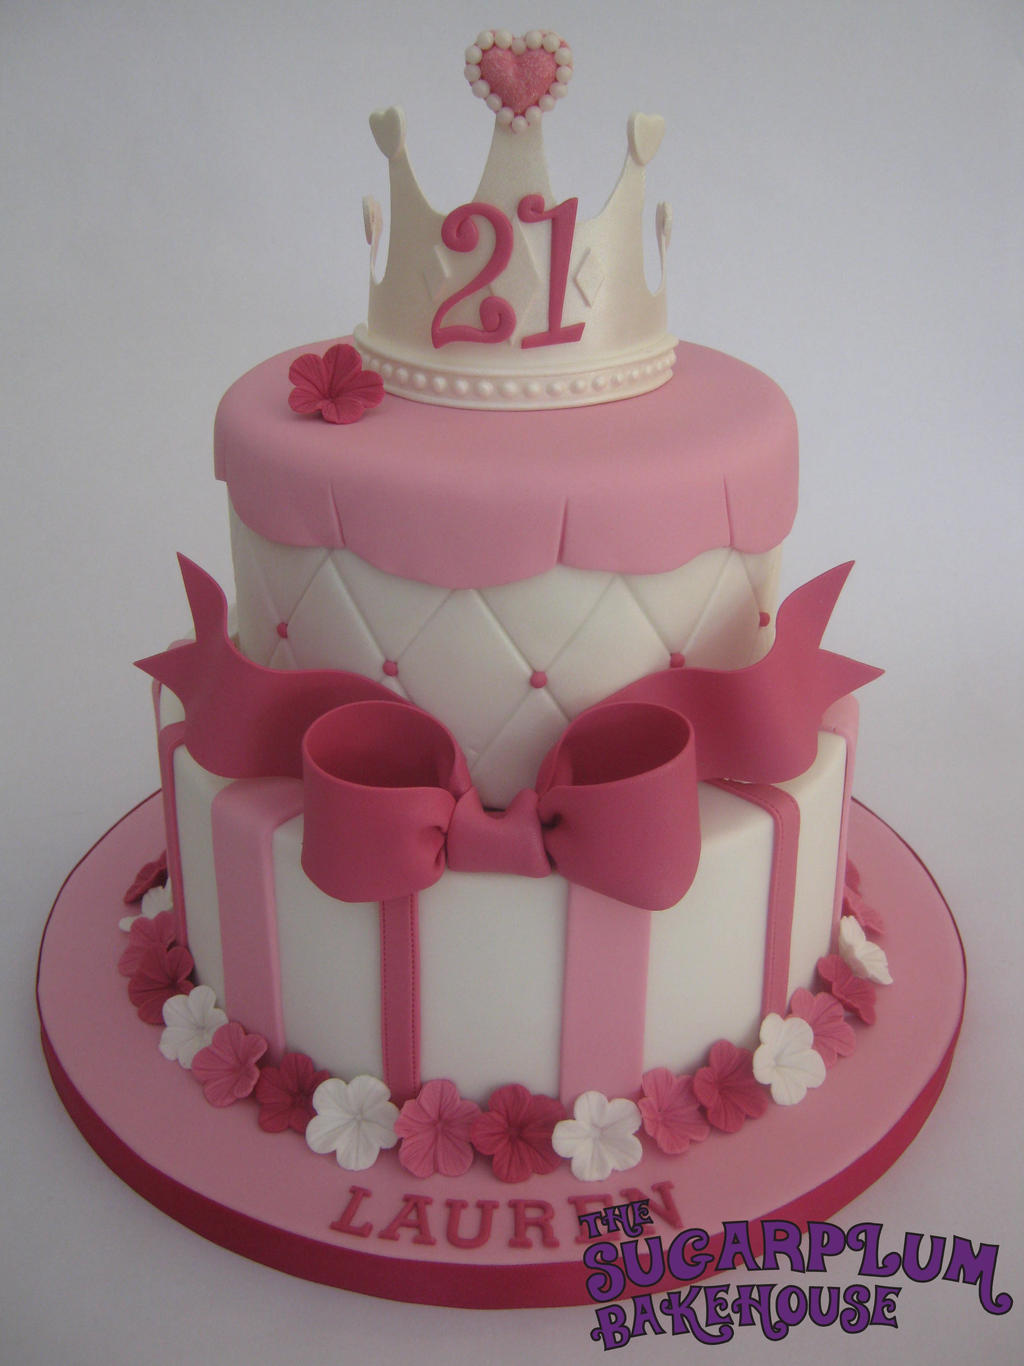 21st Birthday Cake Design For Her : 2 Tier Girly Princess 21st Birthday Cake by SugarplumB on ...